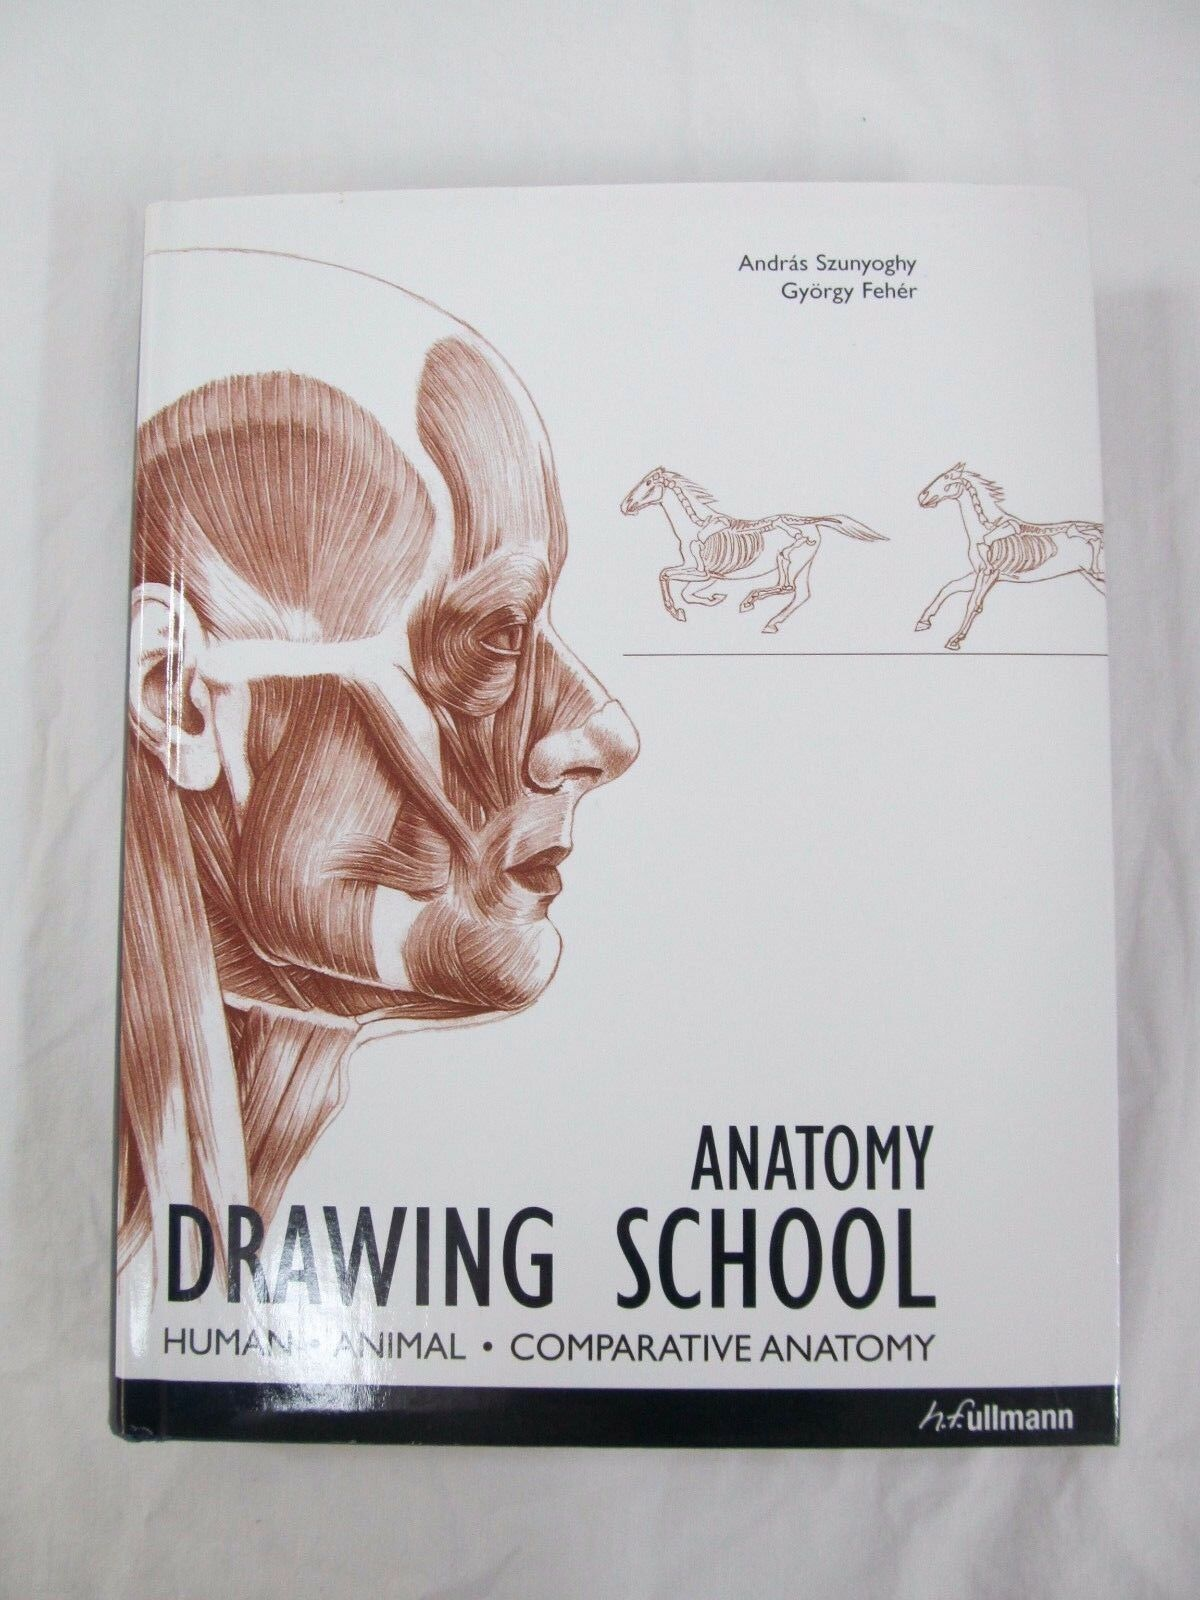 Anatomy Drawing School : Human, Animal, Comparative Anatomy (2008 ...